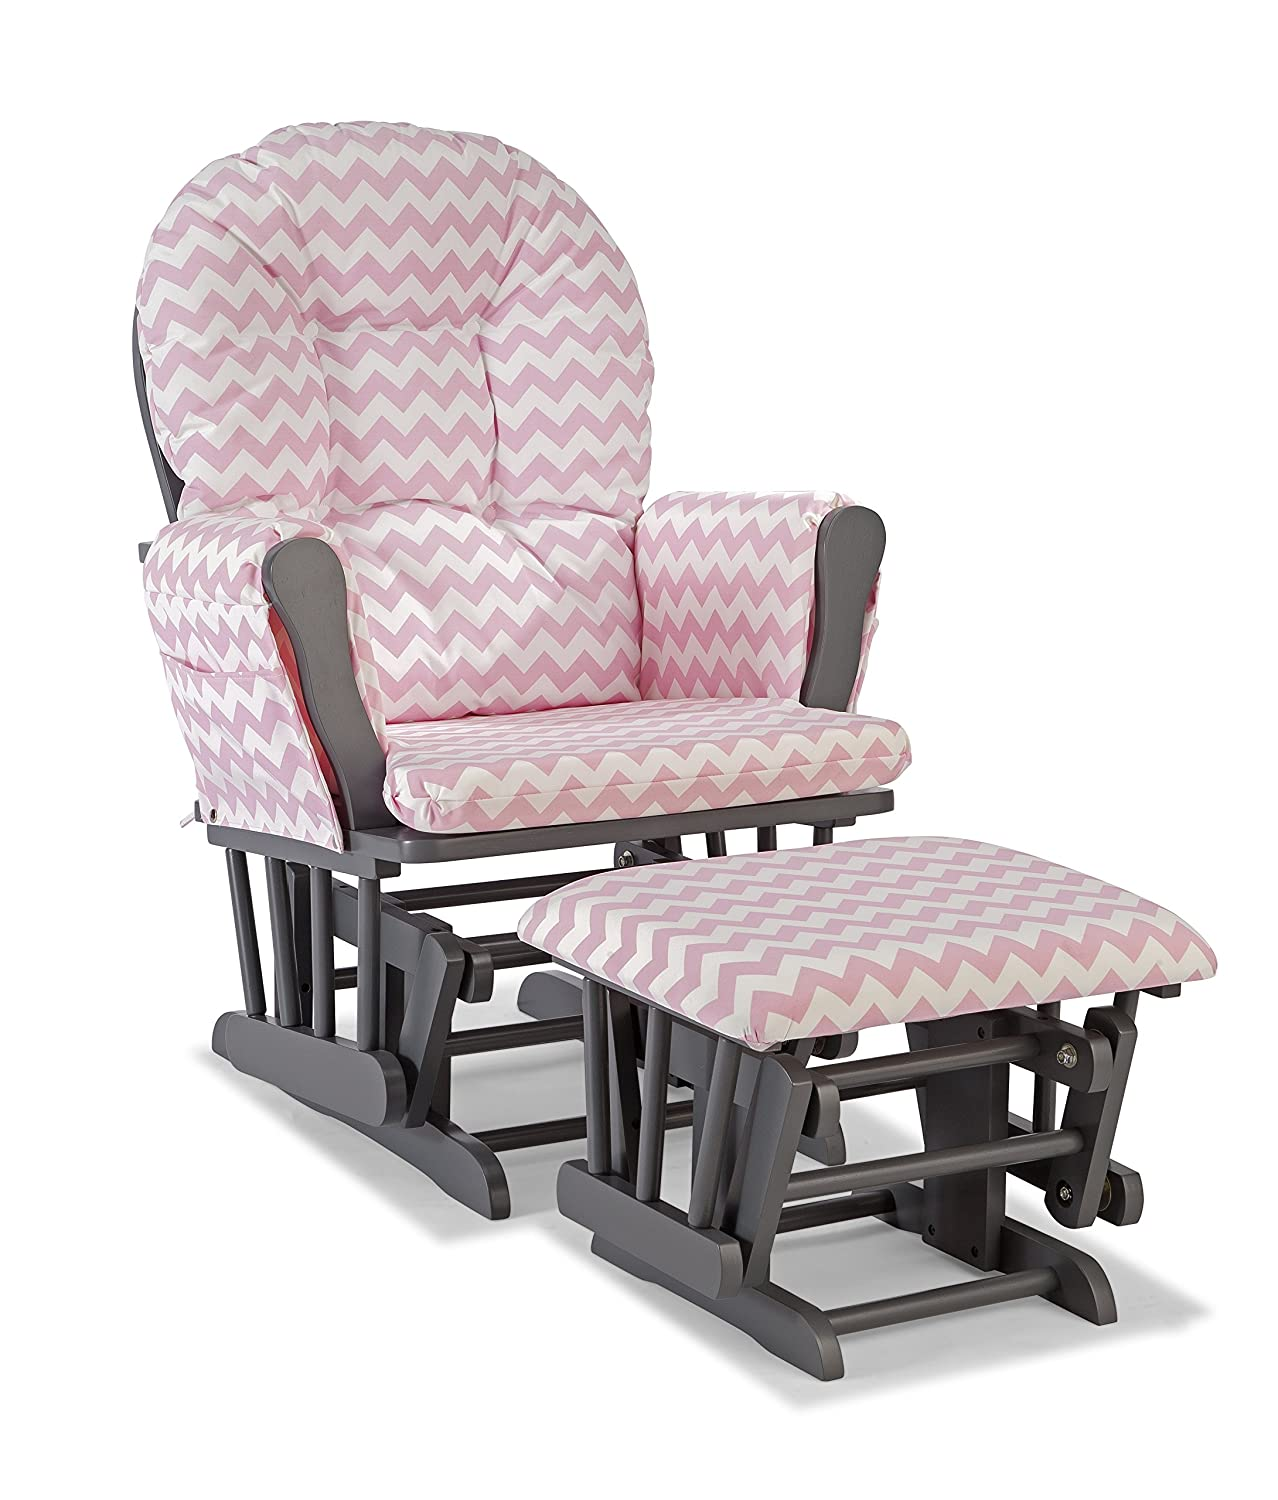 Storkcraft Hoop Custom Glider and Ottoman, Gray/Pink Chevron 06550-612G